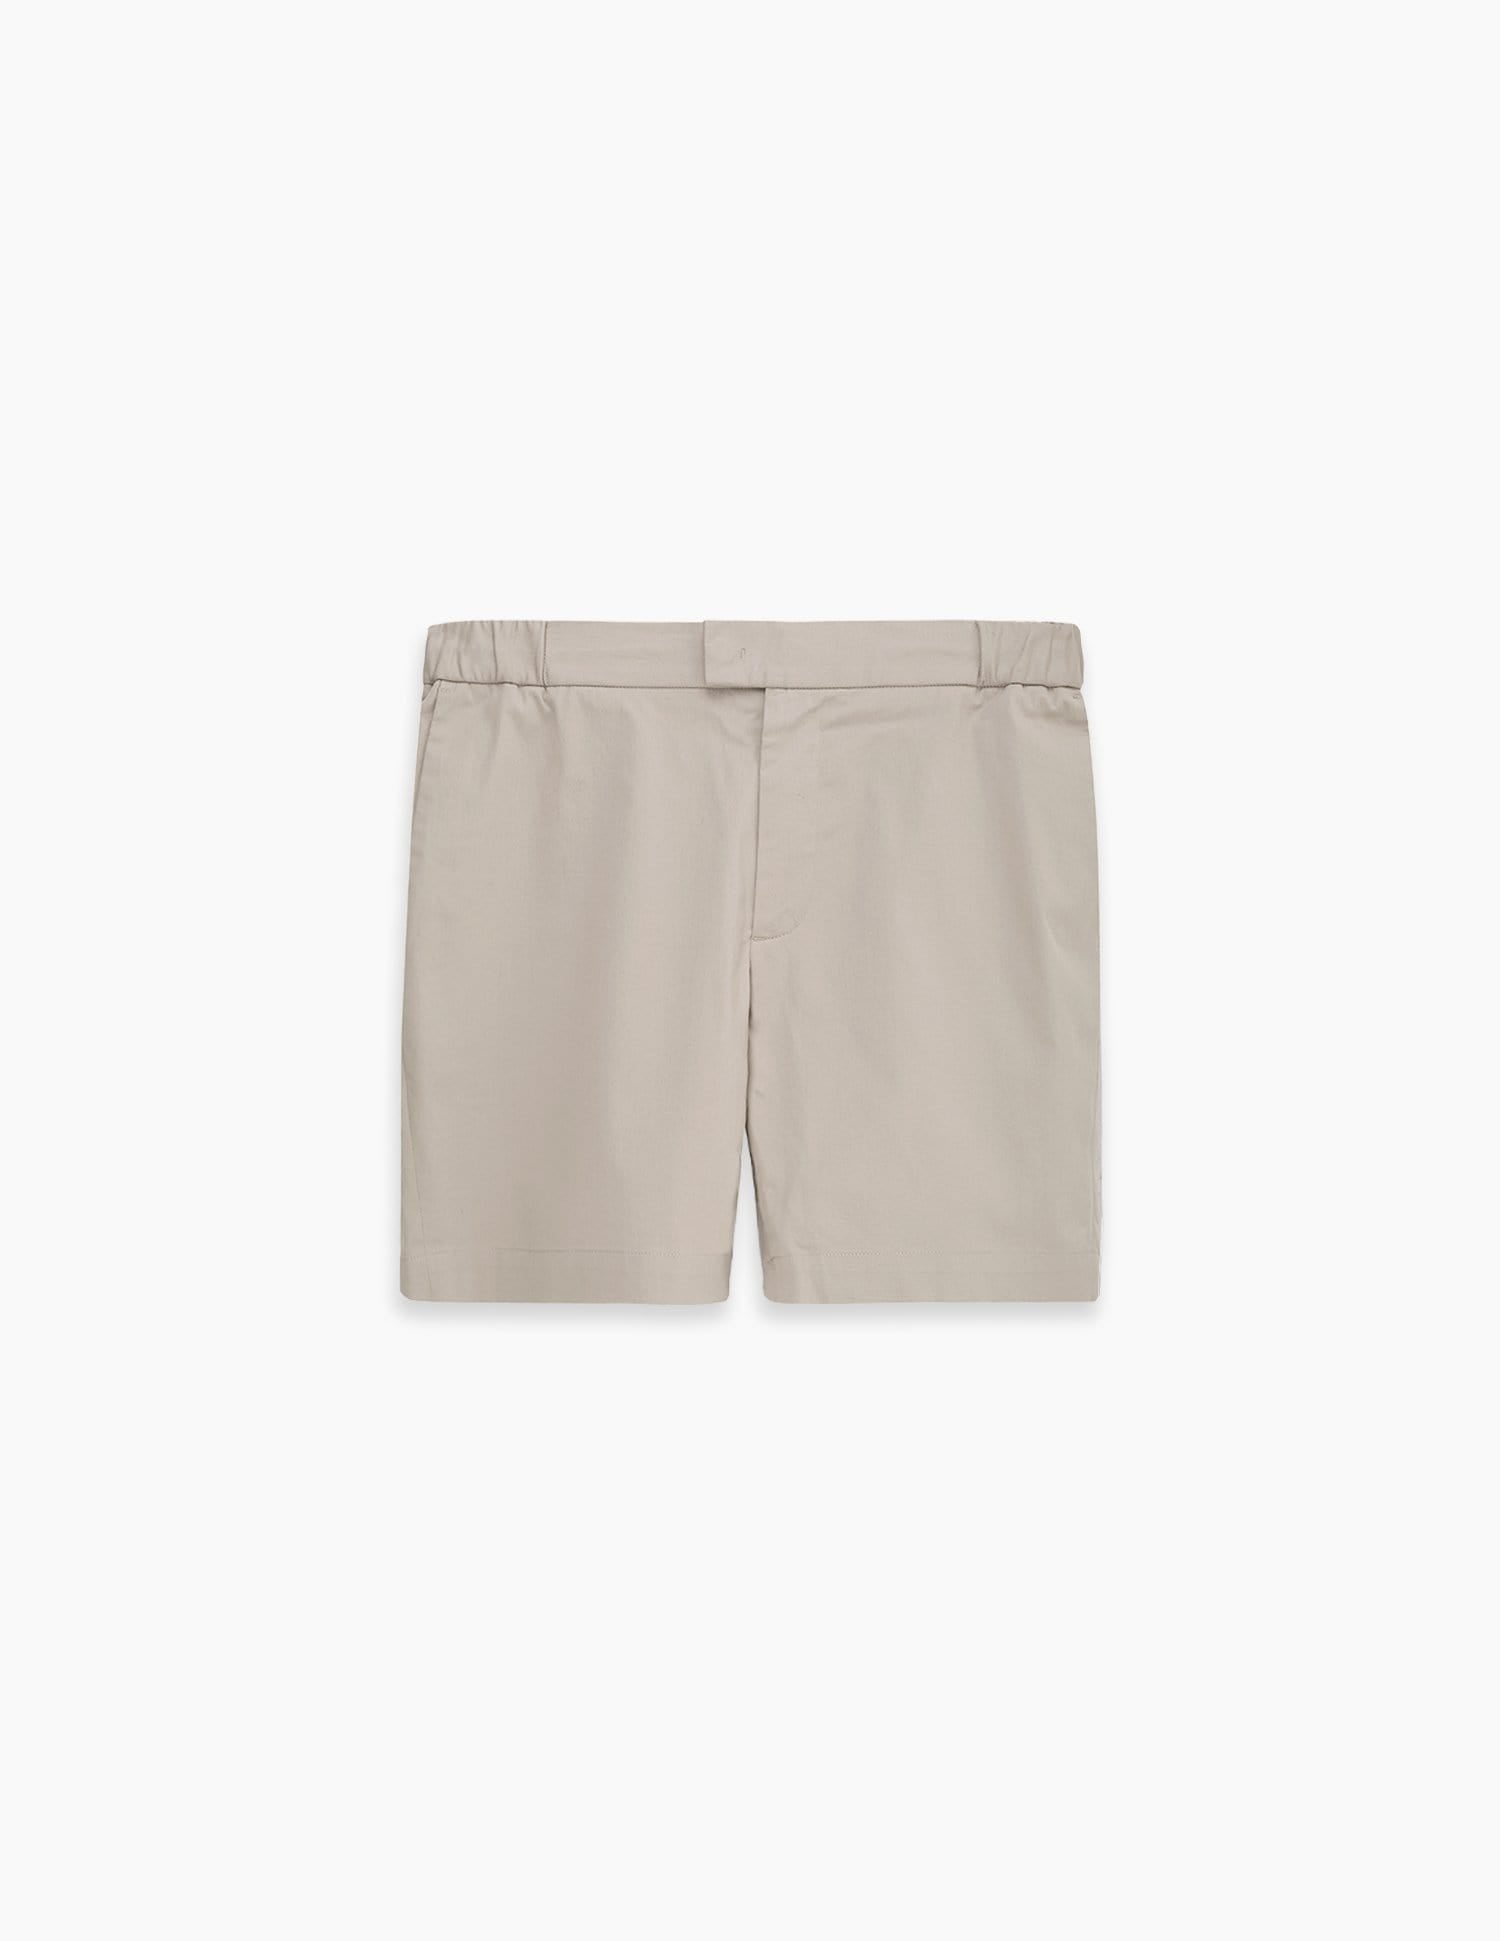 The 12 Shorts || Beige | Stretch Cotton